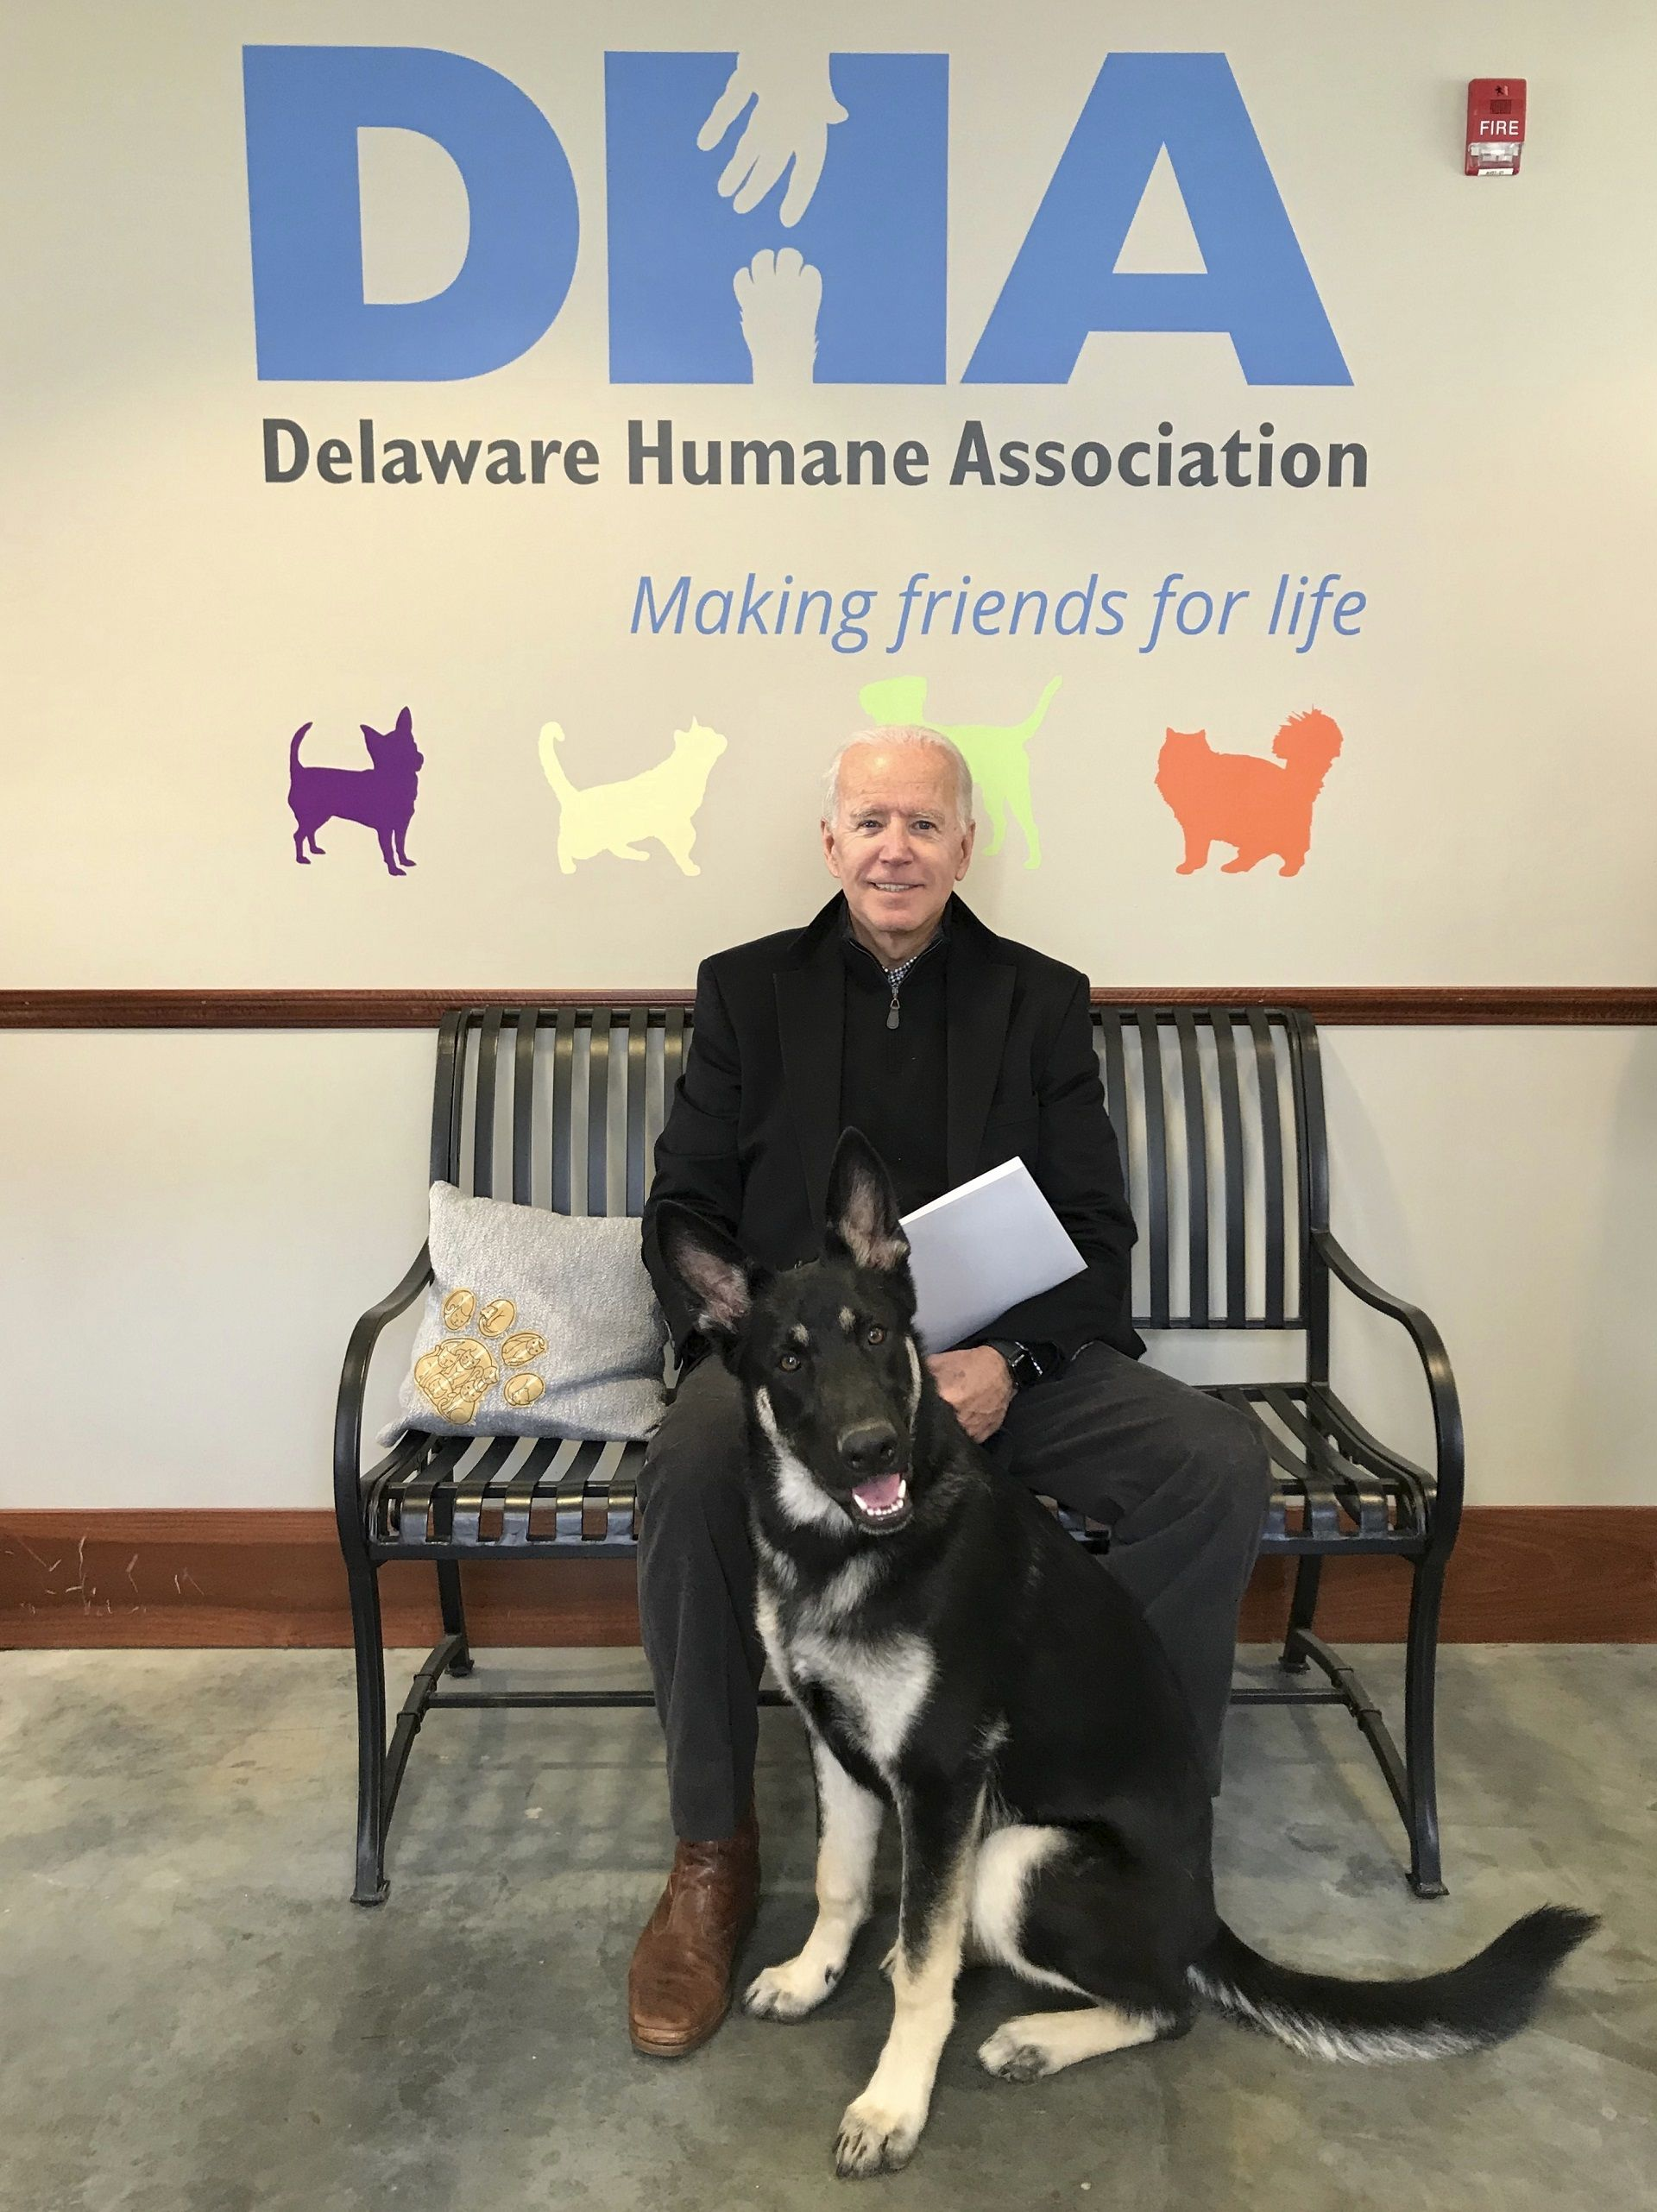 Biden Family Adopts New Pup Named Major Delaware Humane